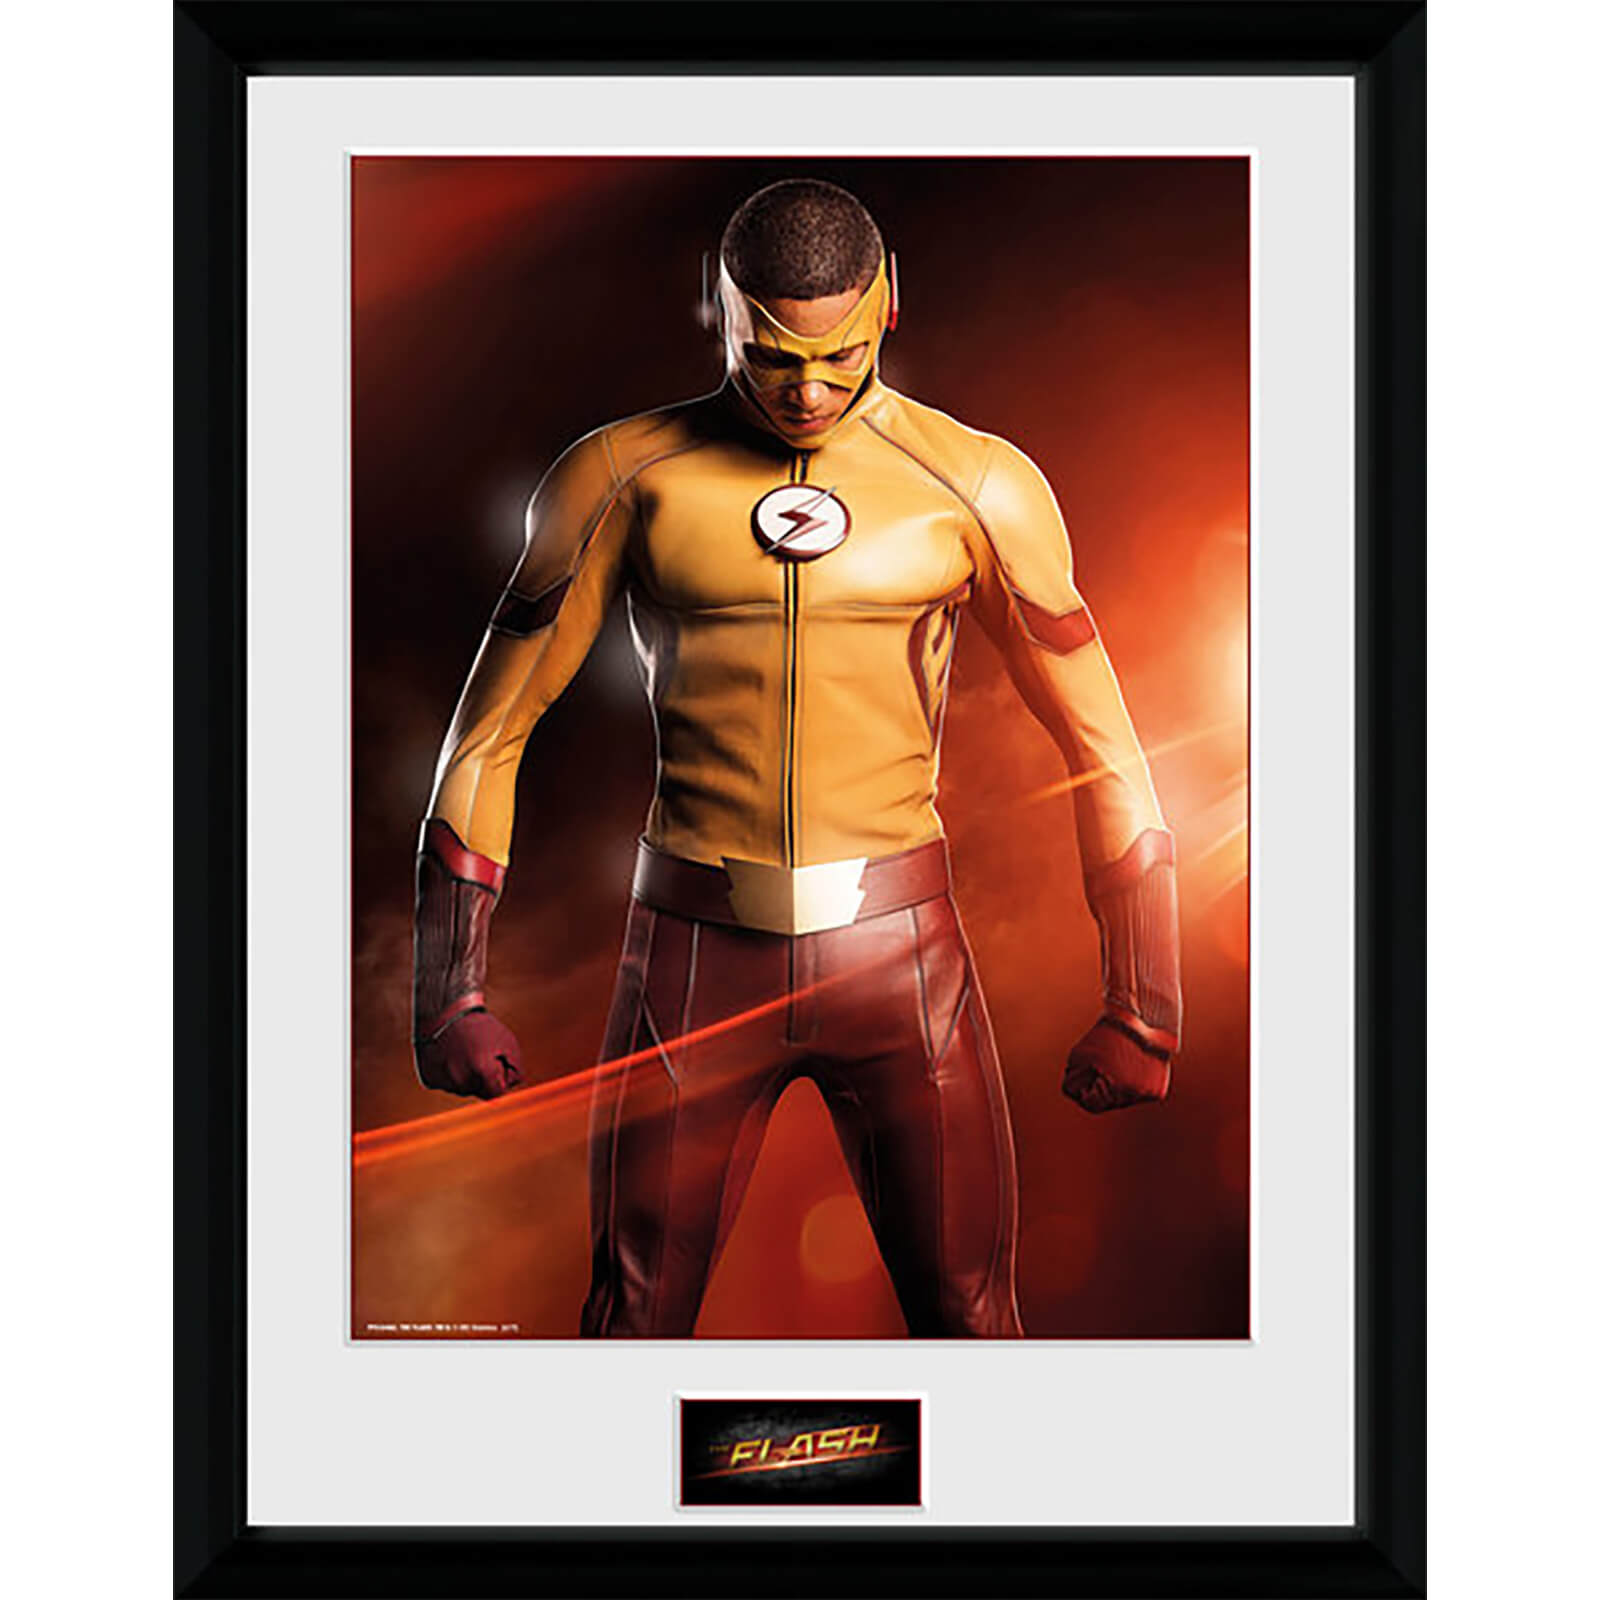 The Flash Kid Flash - 16 x 12 Inches Framed Photograph